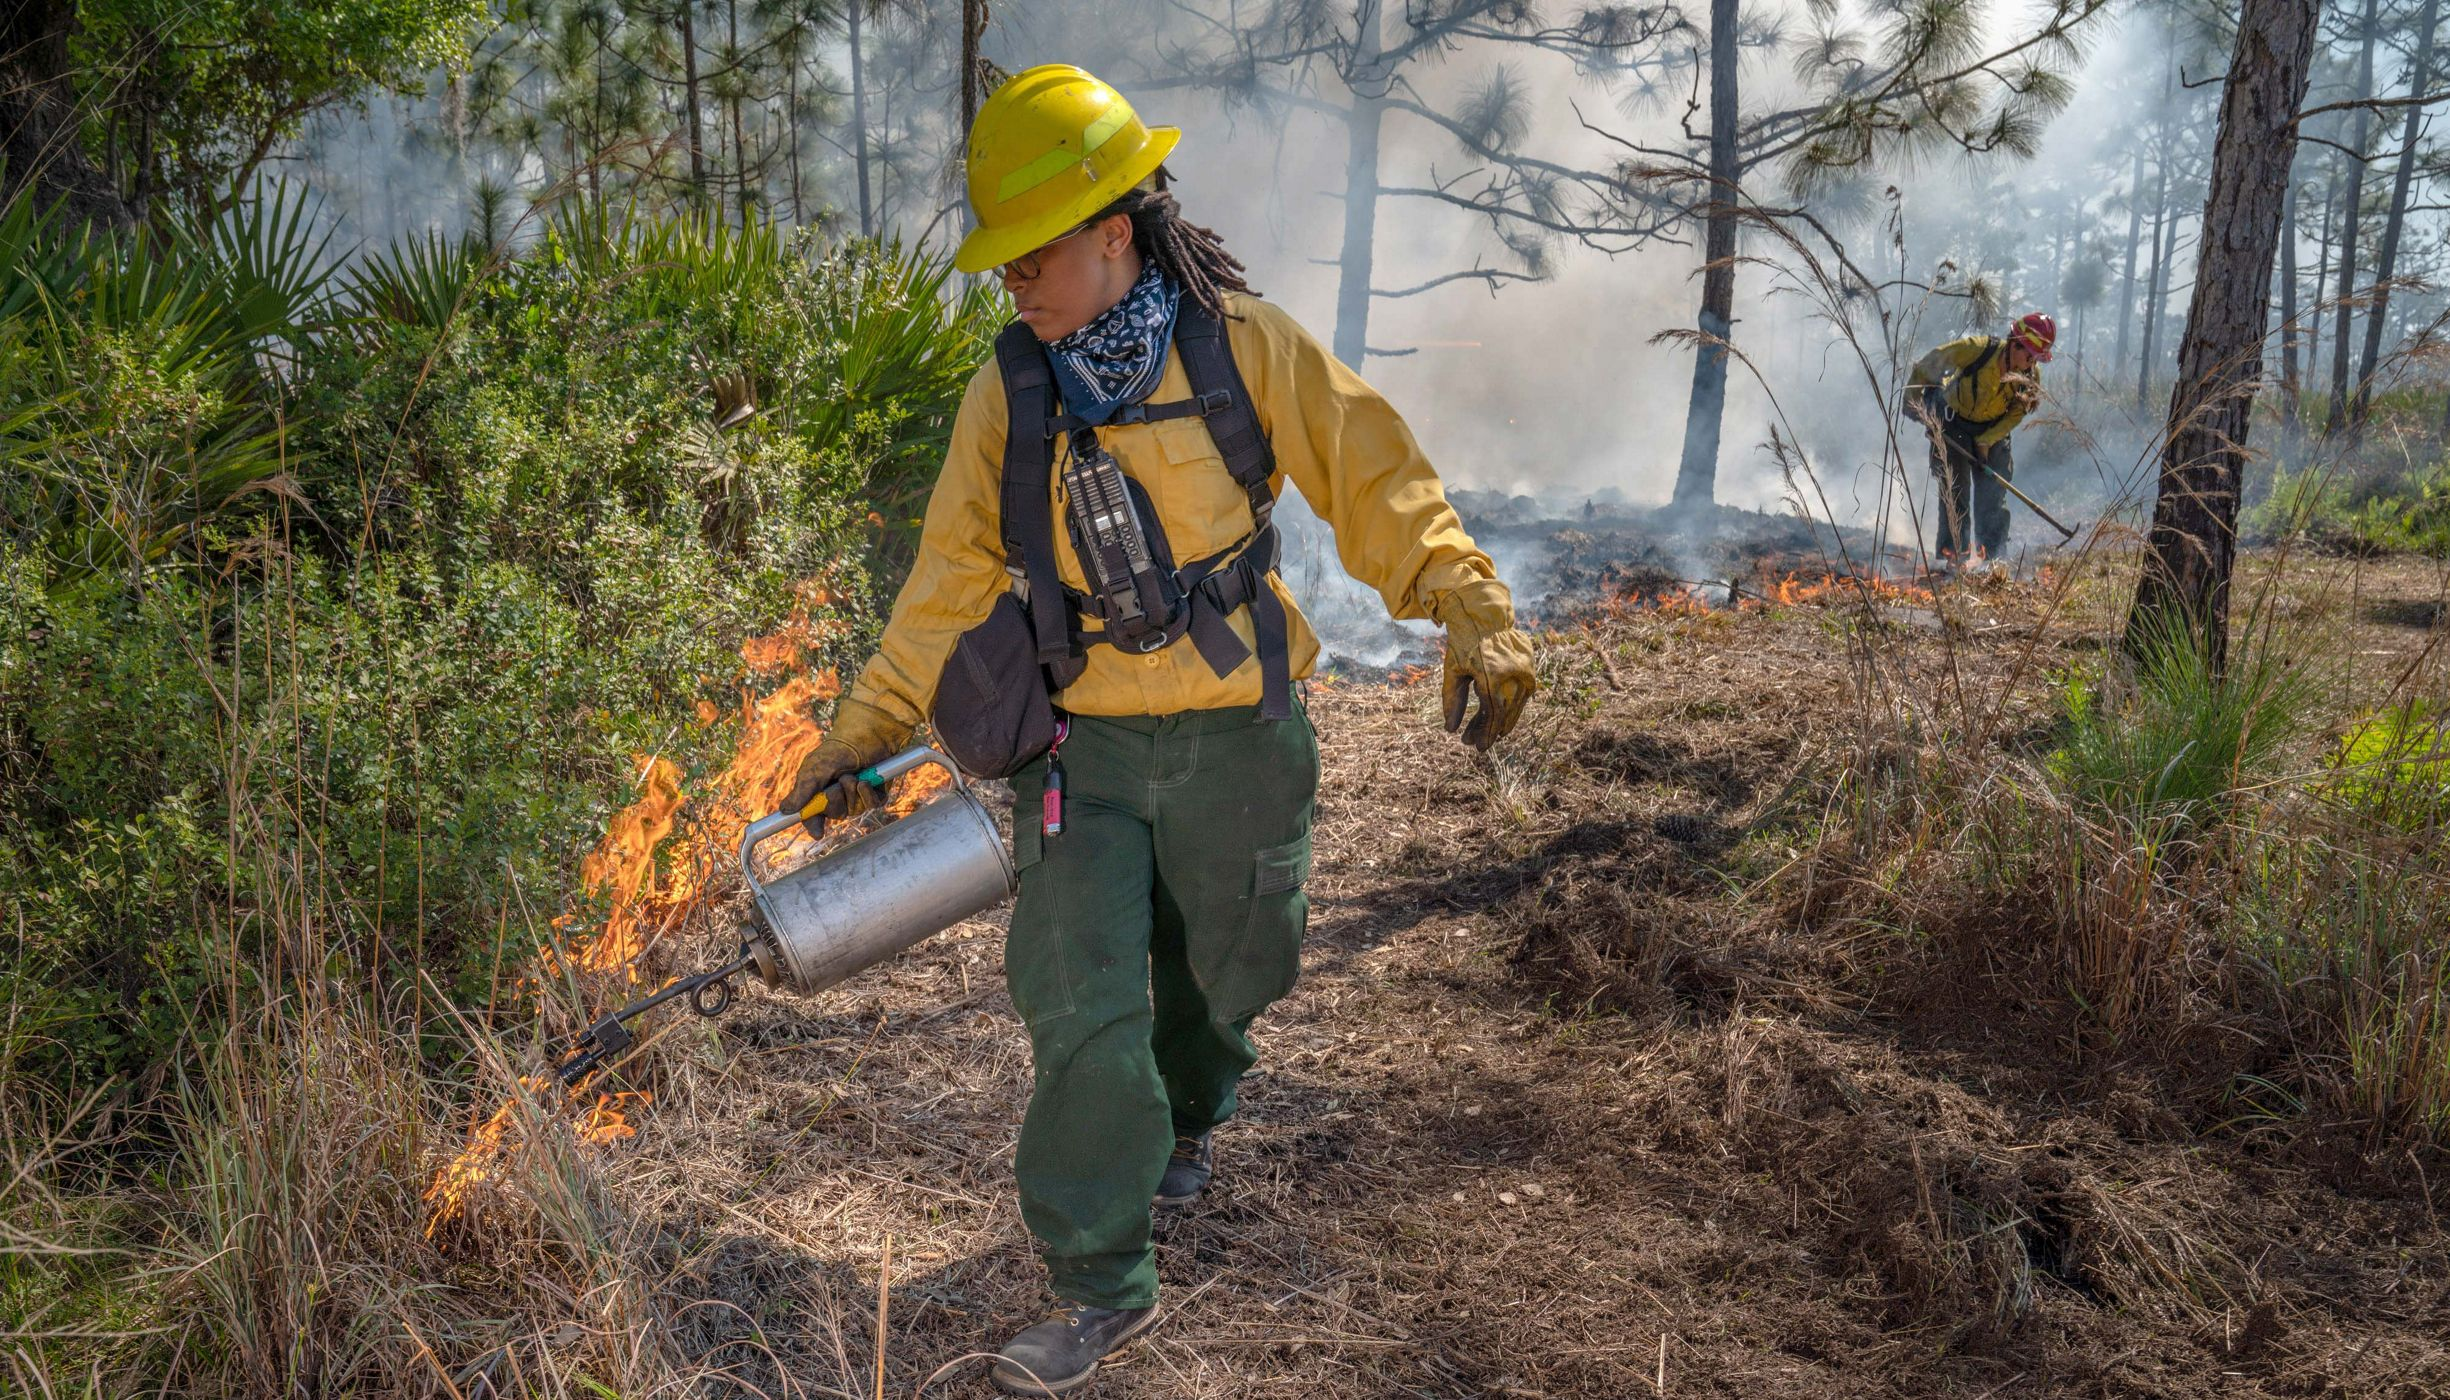 A woman uses a drip torch during a TNC controlled burn.